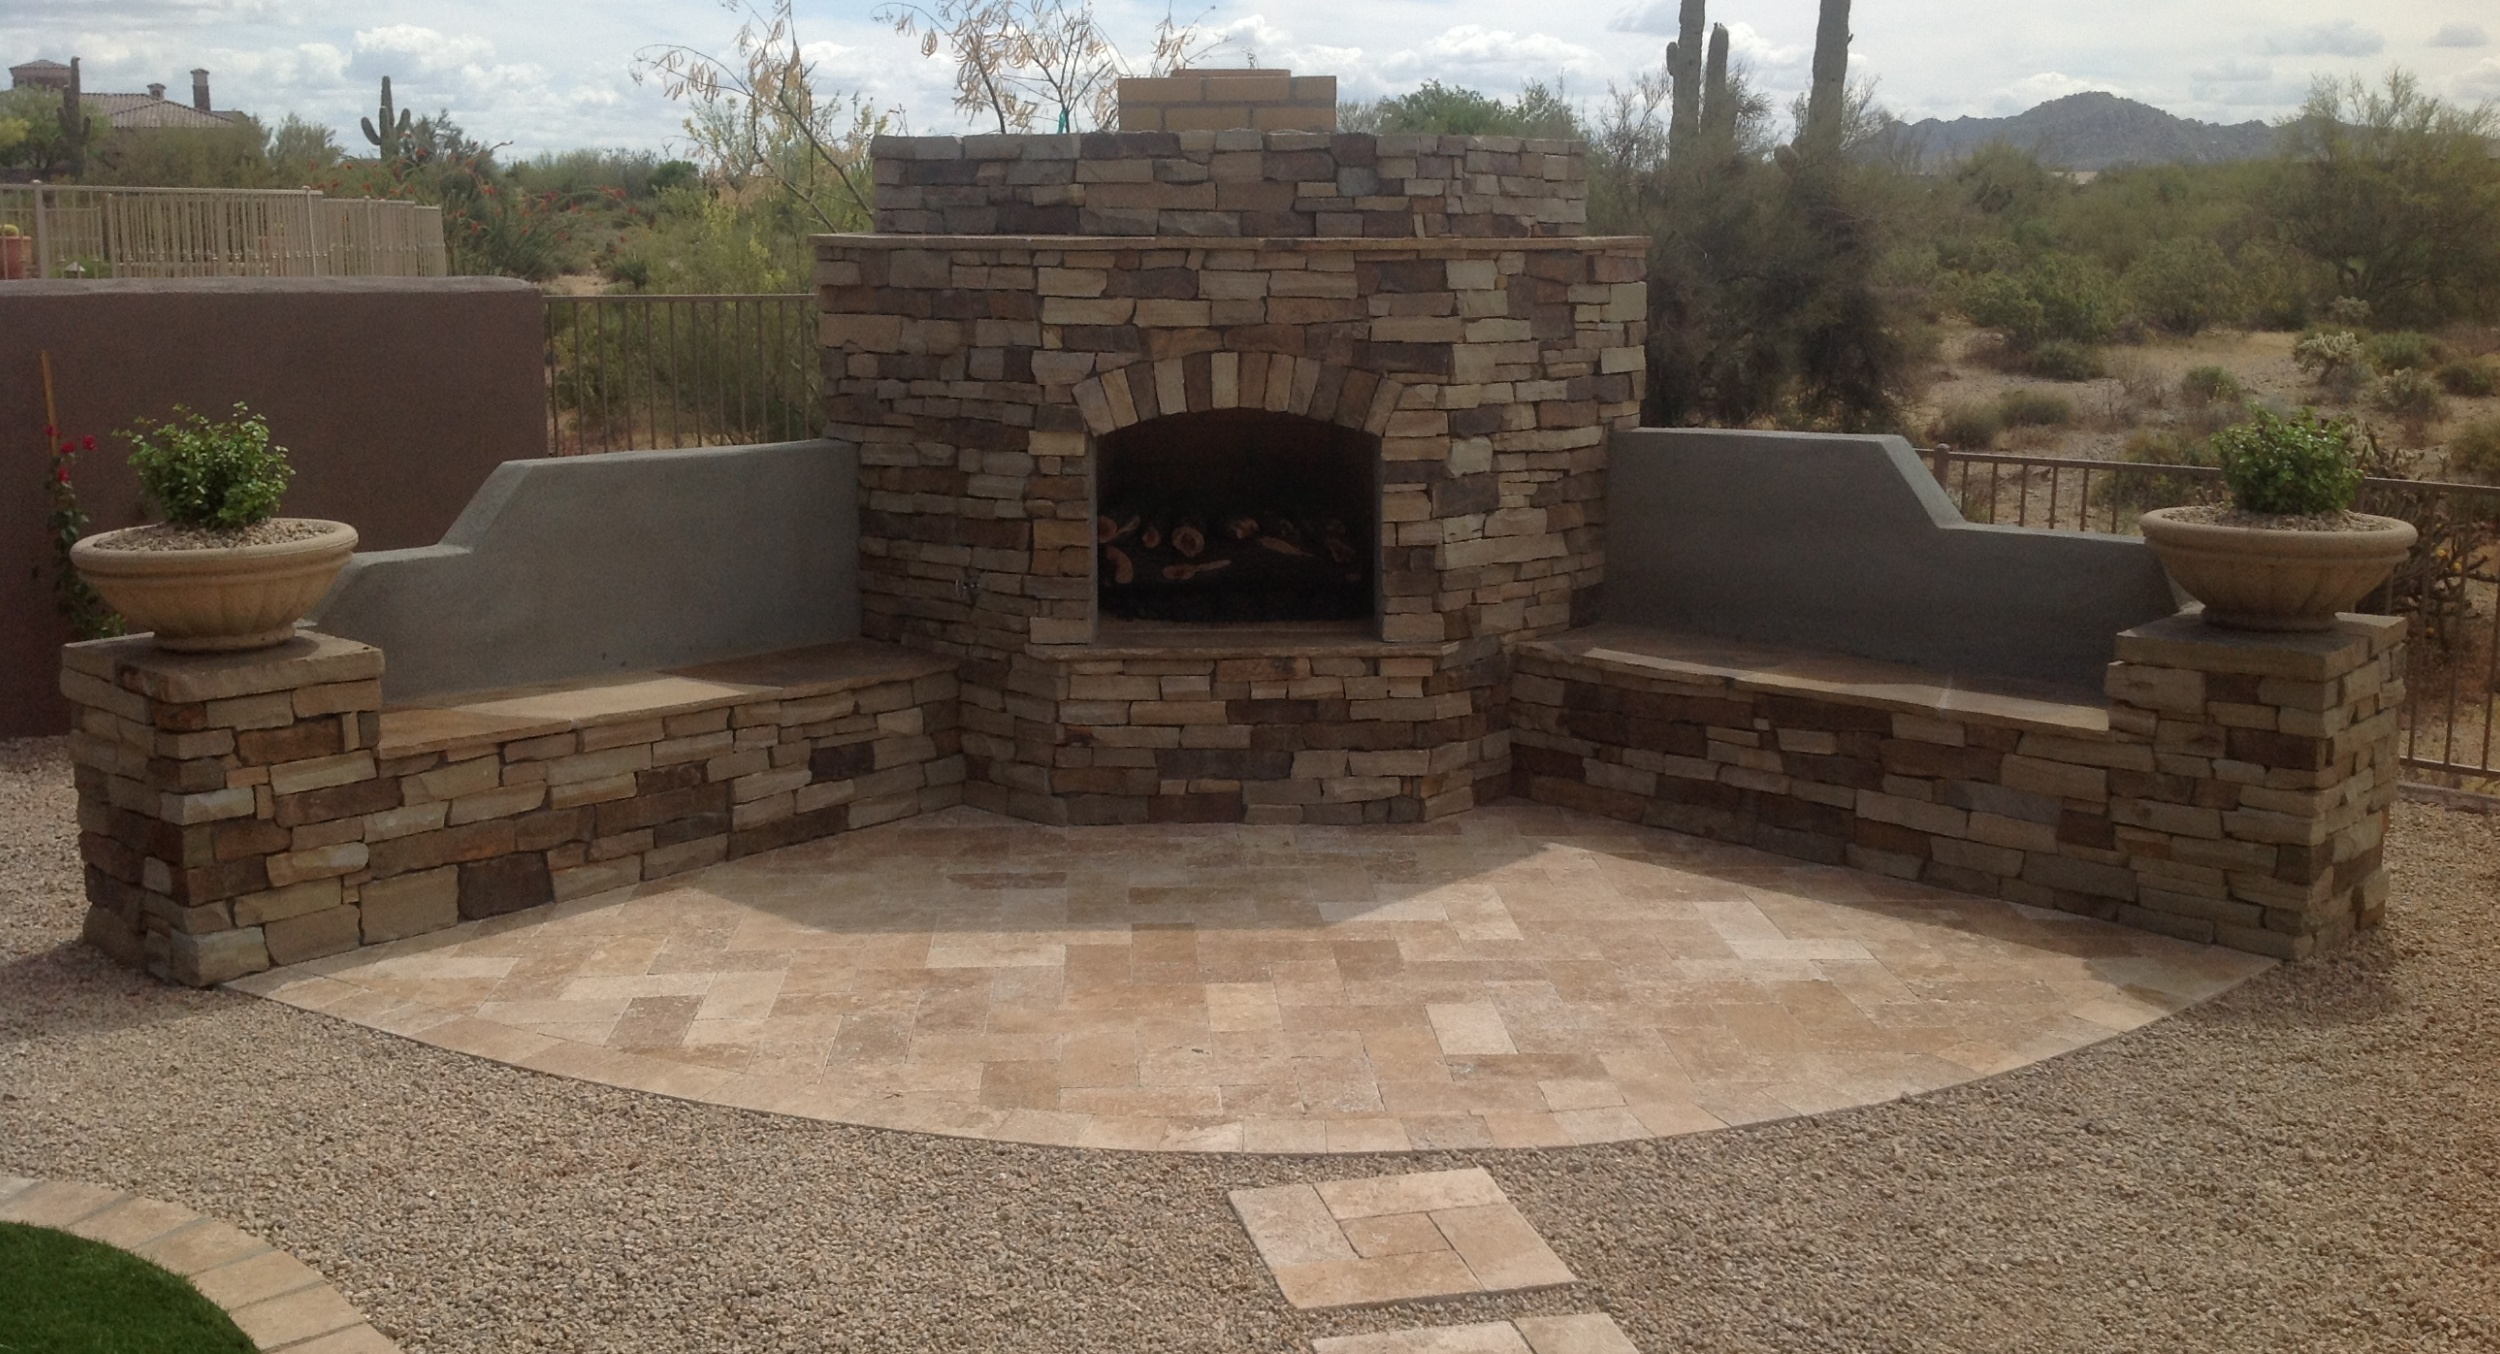 Stone and travertine combined make beautiful outdoor fireplaces. Scottsdale outdoor living spaces like this one will get lots of use for both relaxing and entertaining friends.